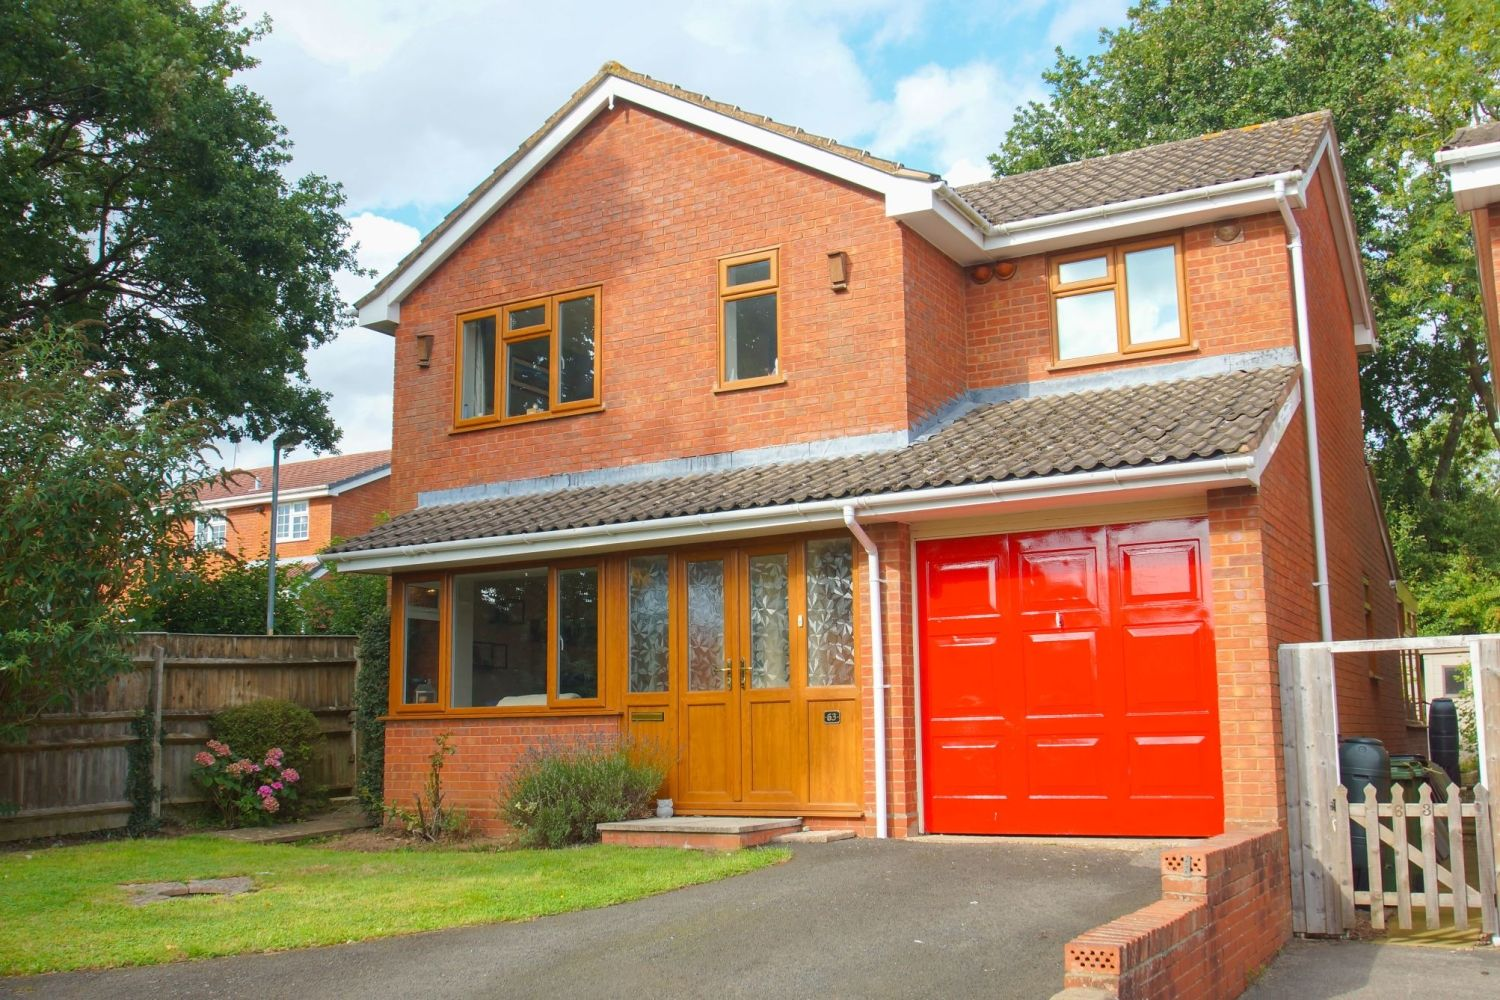 4 bed detached for sale in Packwood Close, Webheath 1